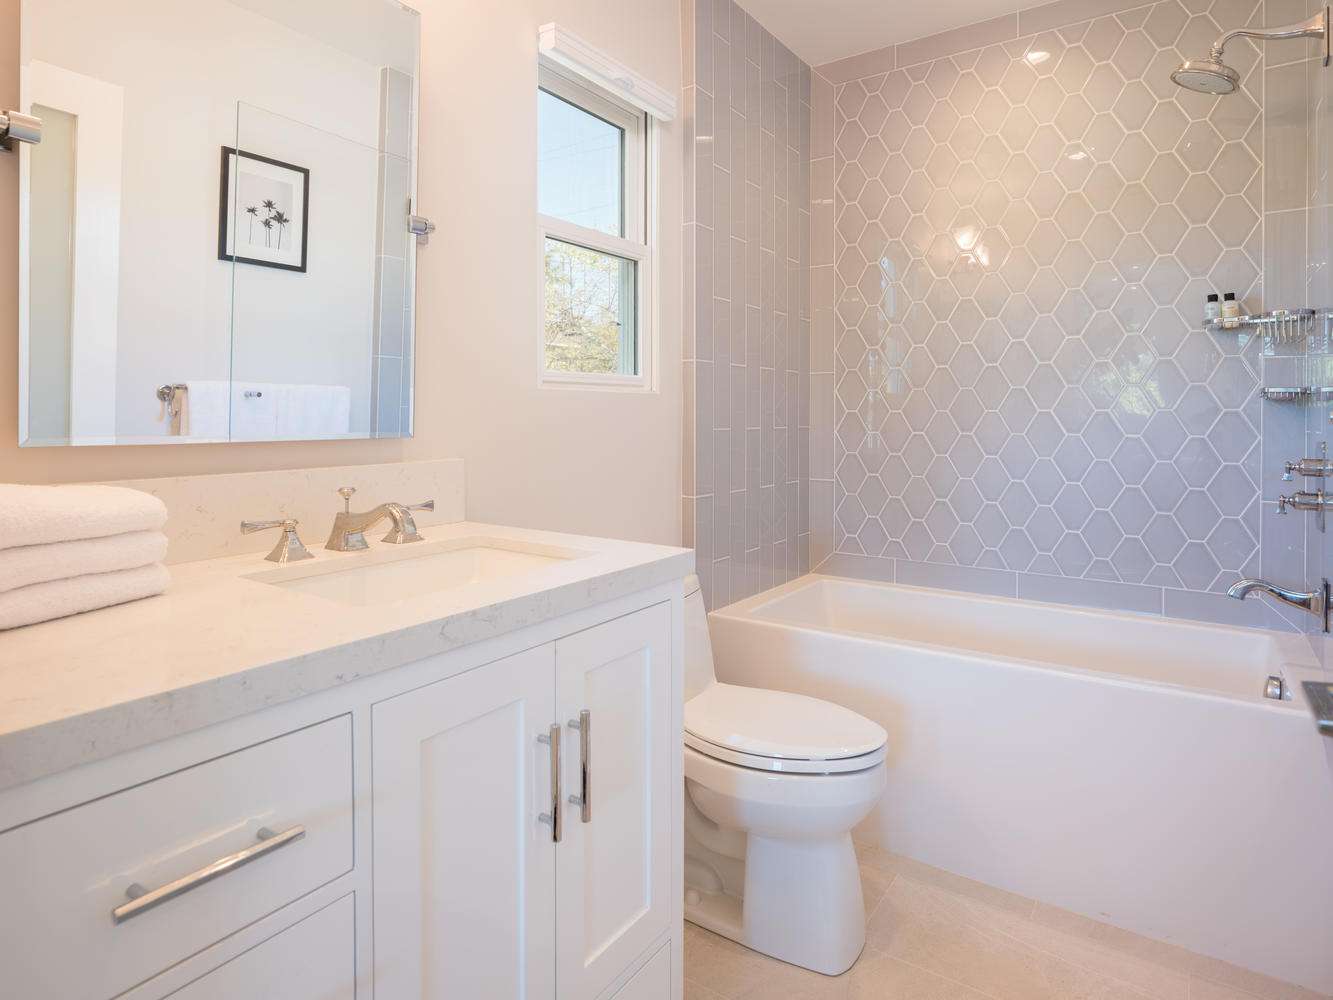 571 Radcliffe Ave Pacific-large-032-23-Bathroom-1334x1000-72dpi.jpg